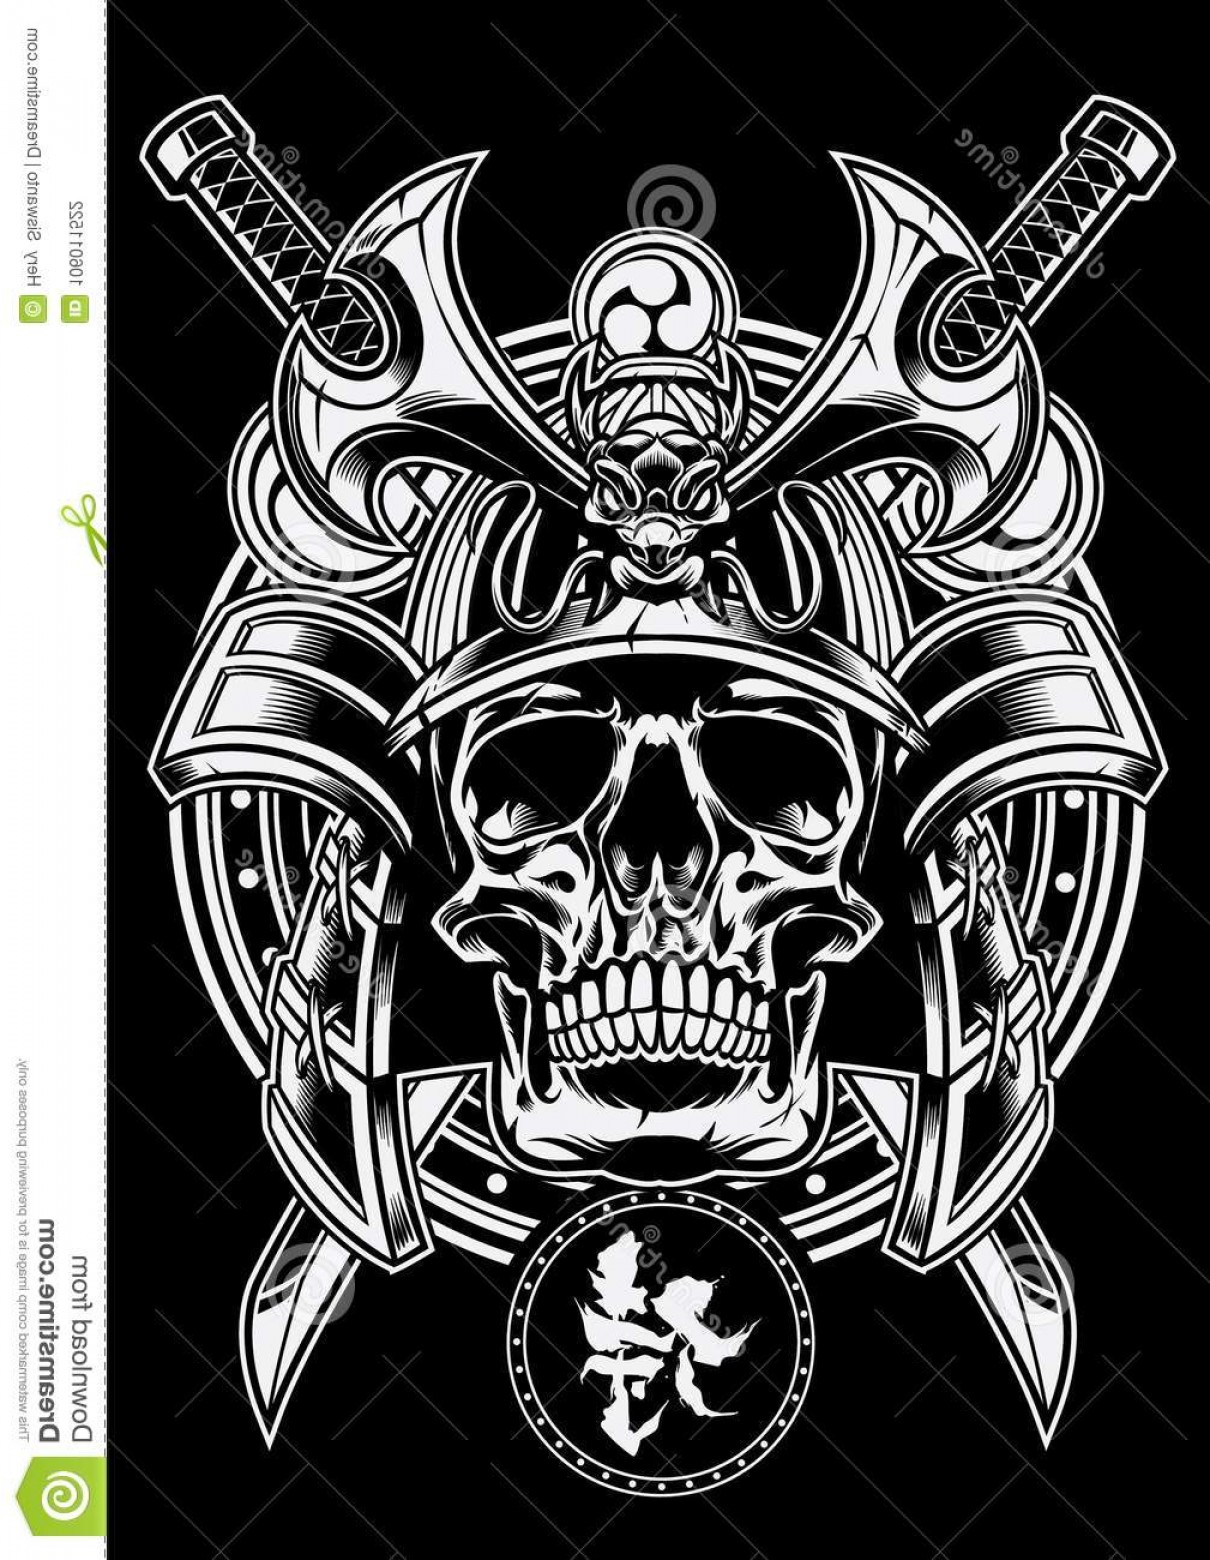 Samurai Warrior Vector: Samurai Warrior Skull Traditional Japanese Sword Katana Vector Image